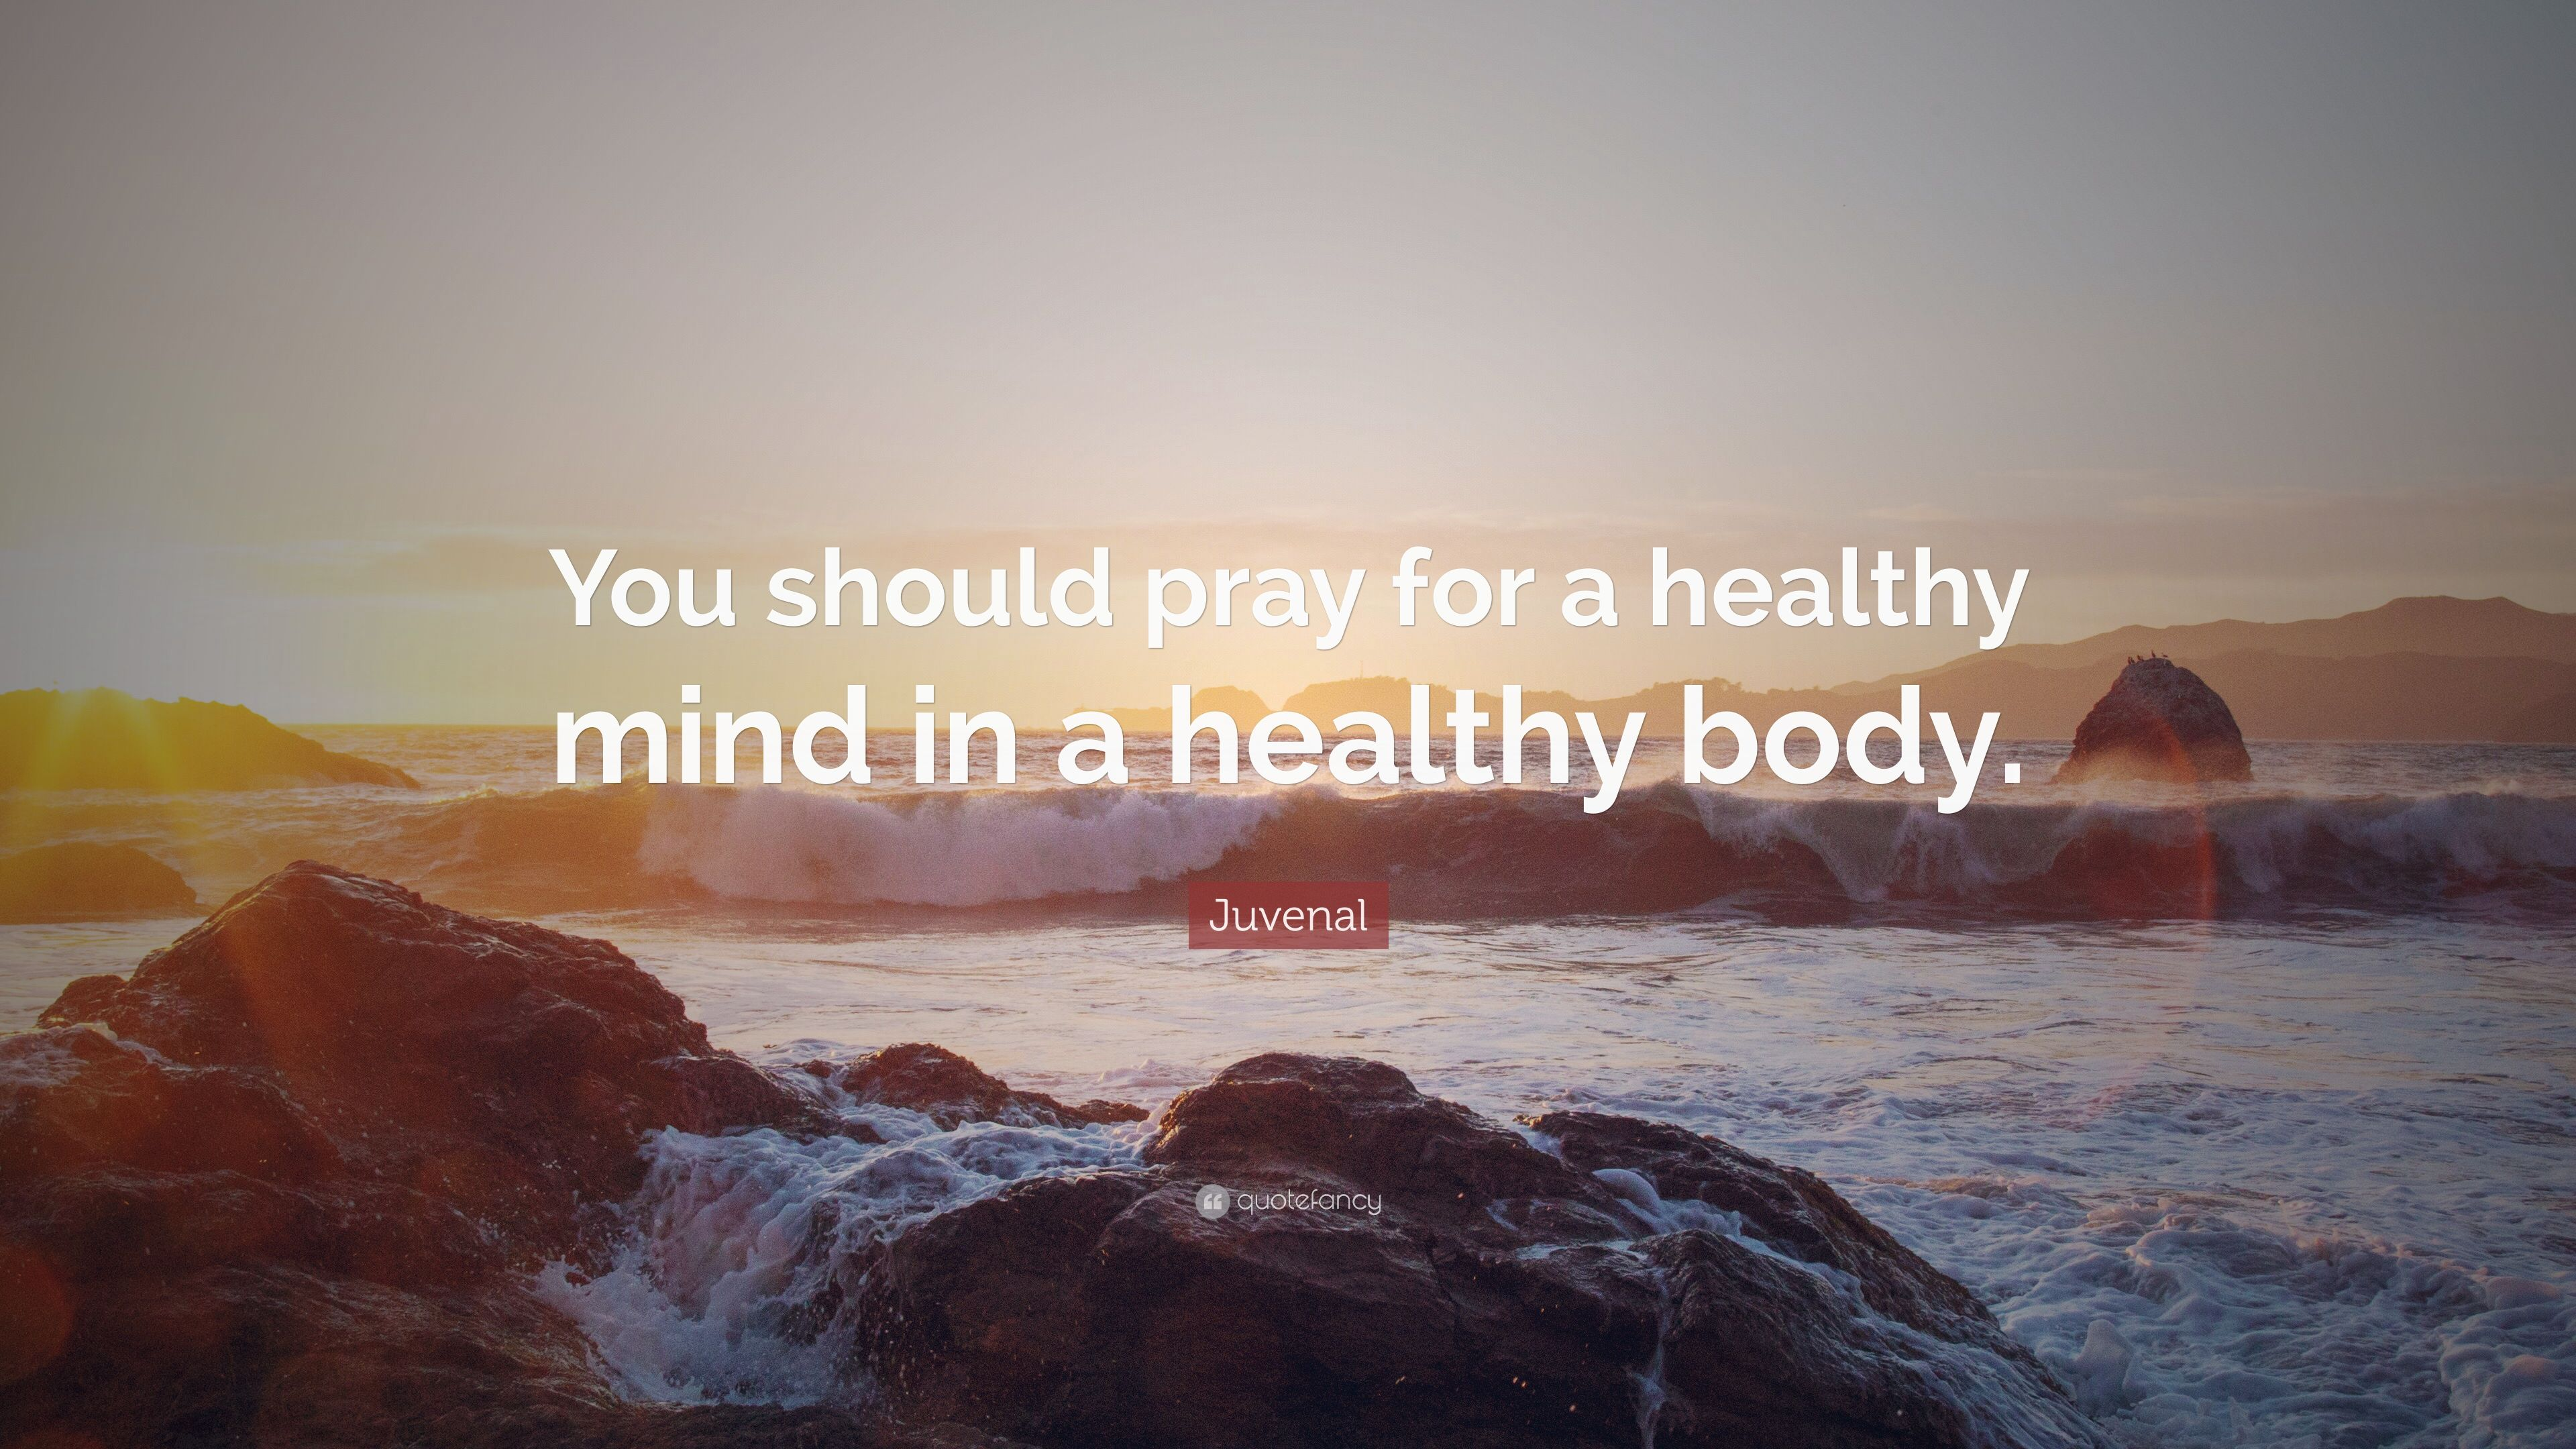 Juvenal Quote You Should Pray For A Healthy Mind In A Healthy Body